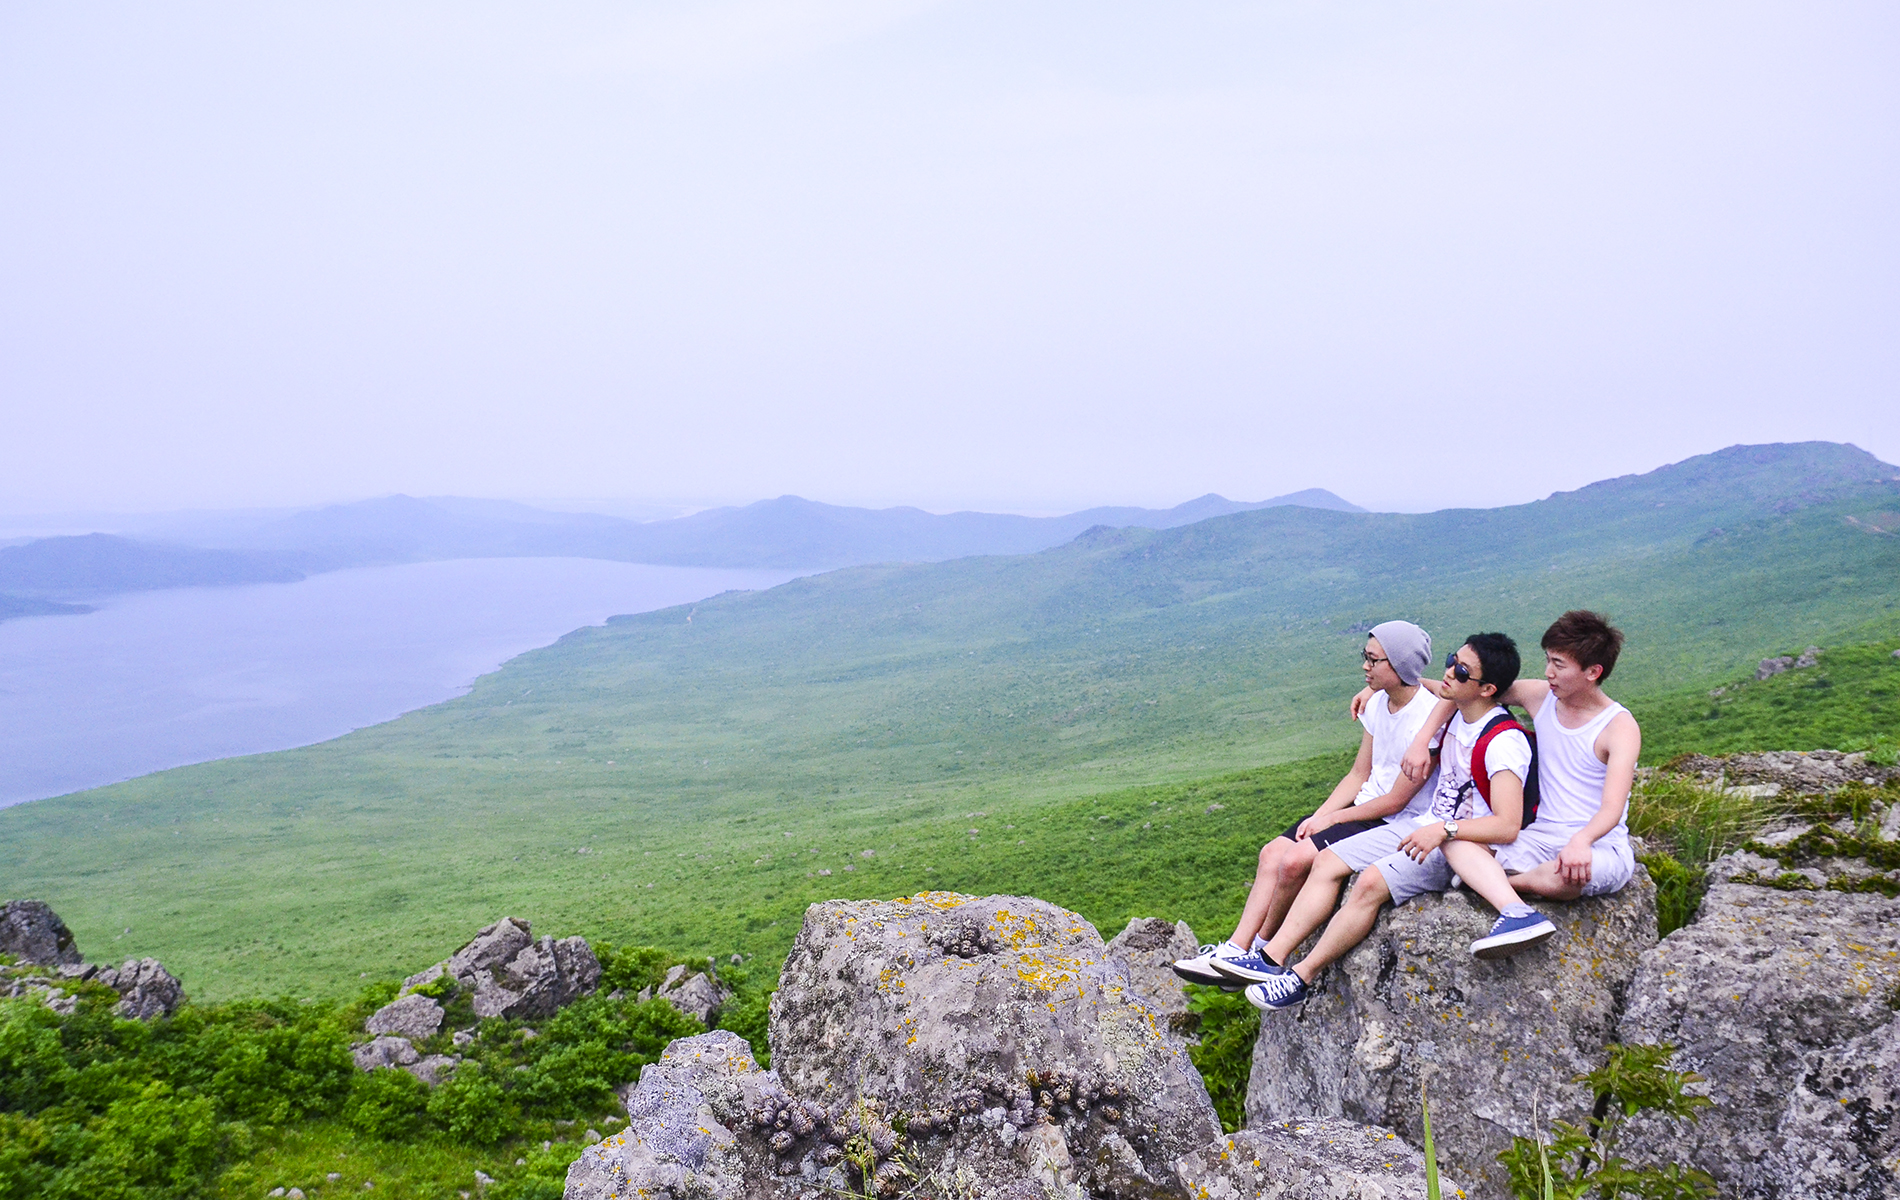 tourists sitting on large rock